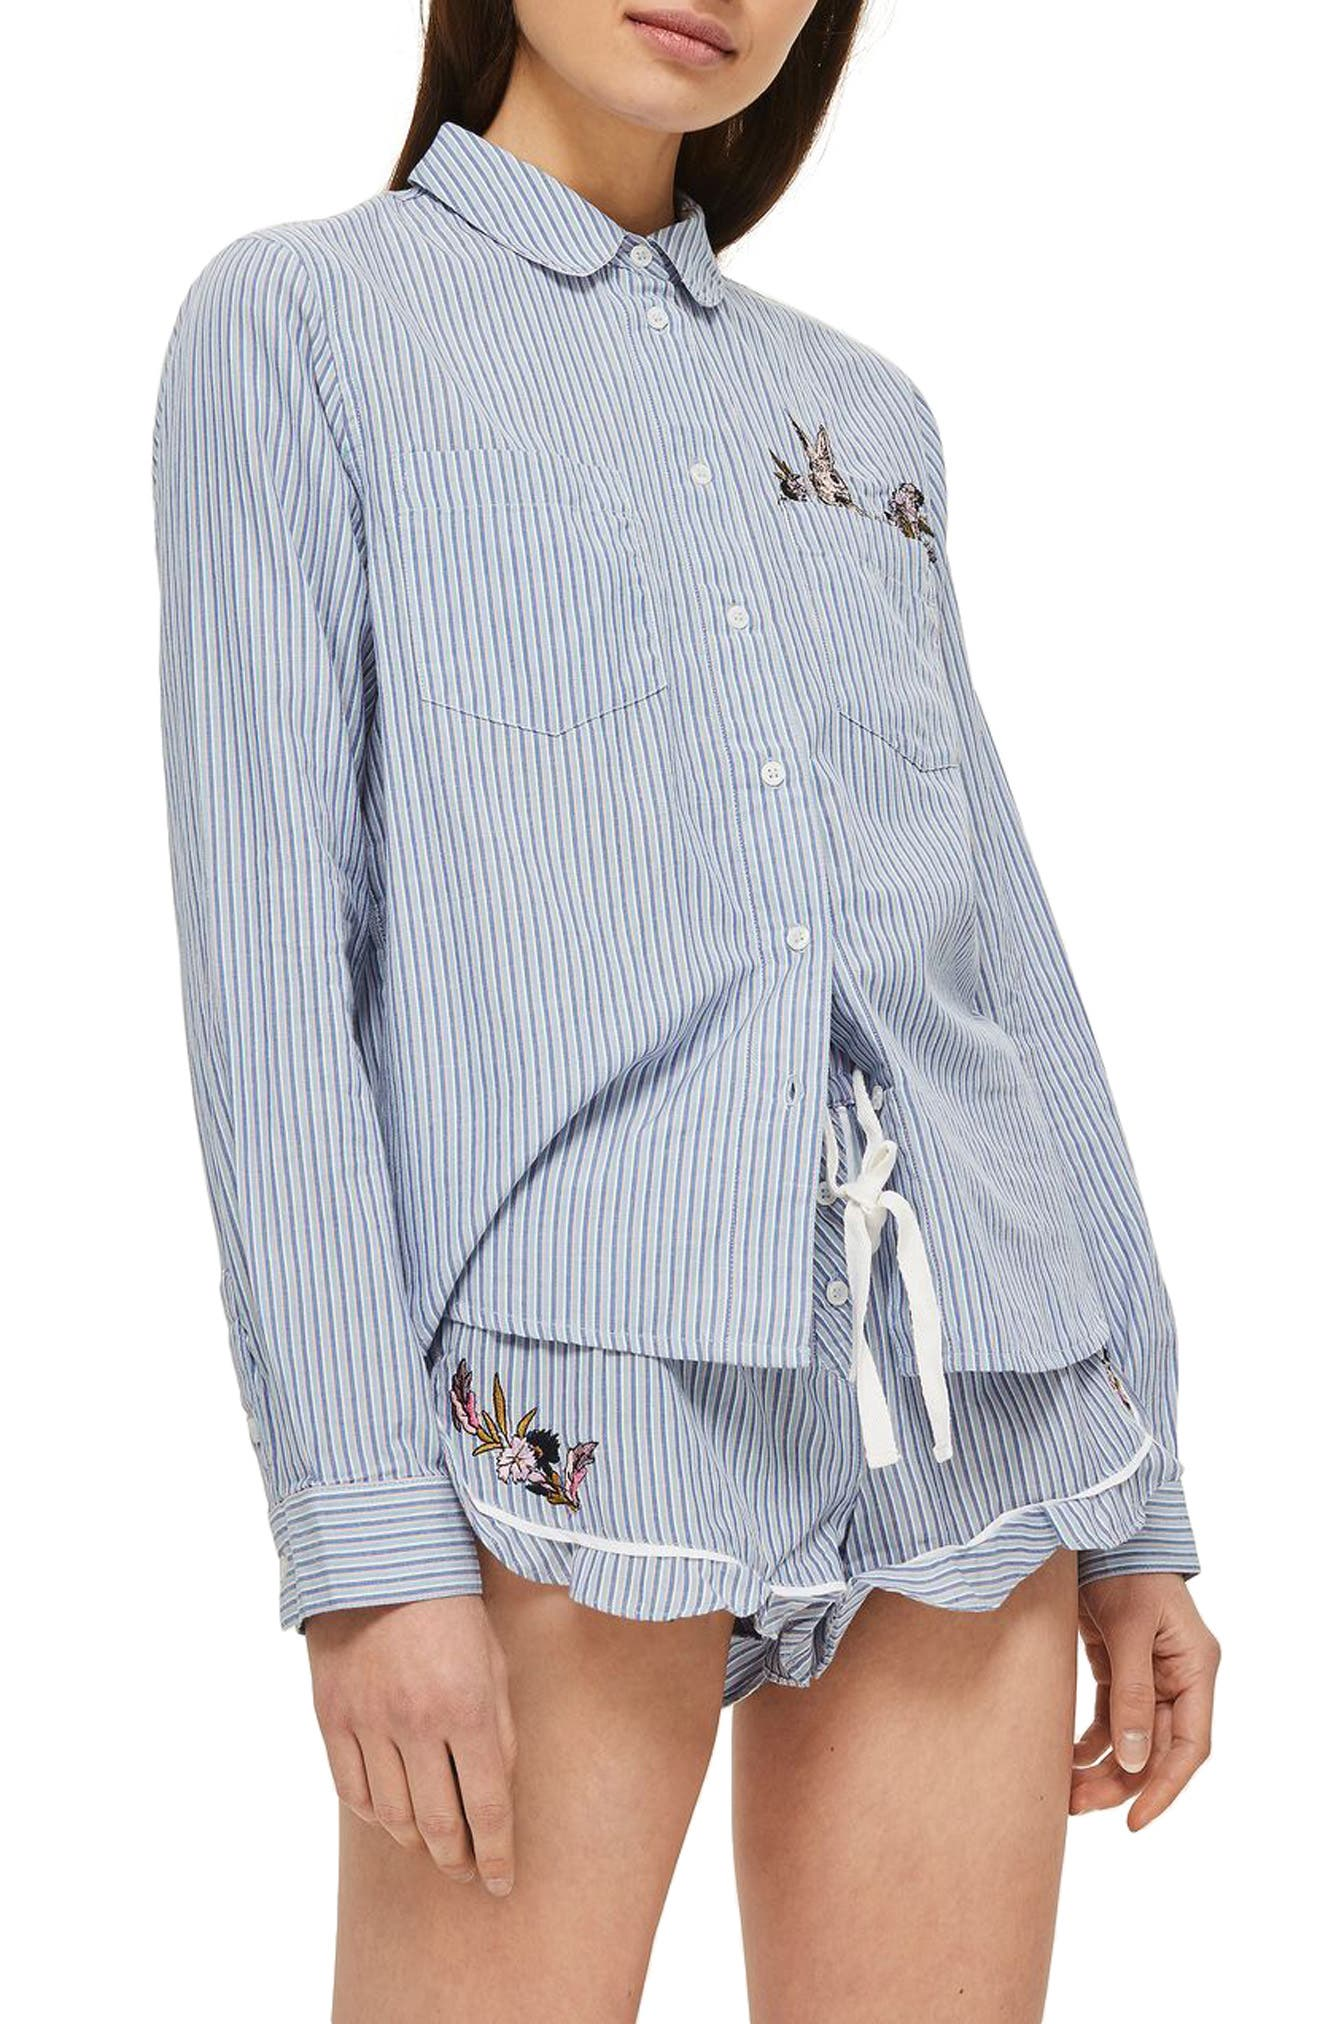 Bunny Embroidered Short Pajamas,                         Main,                         color, Pink Multi